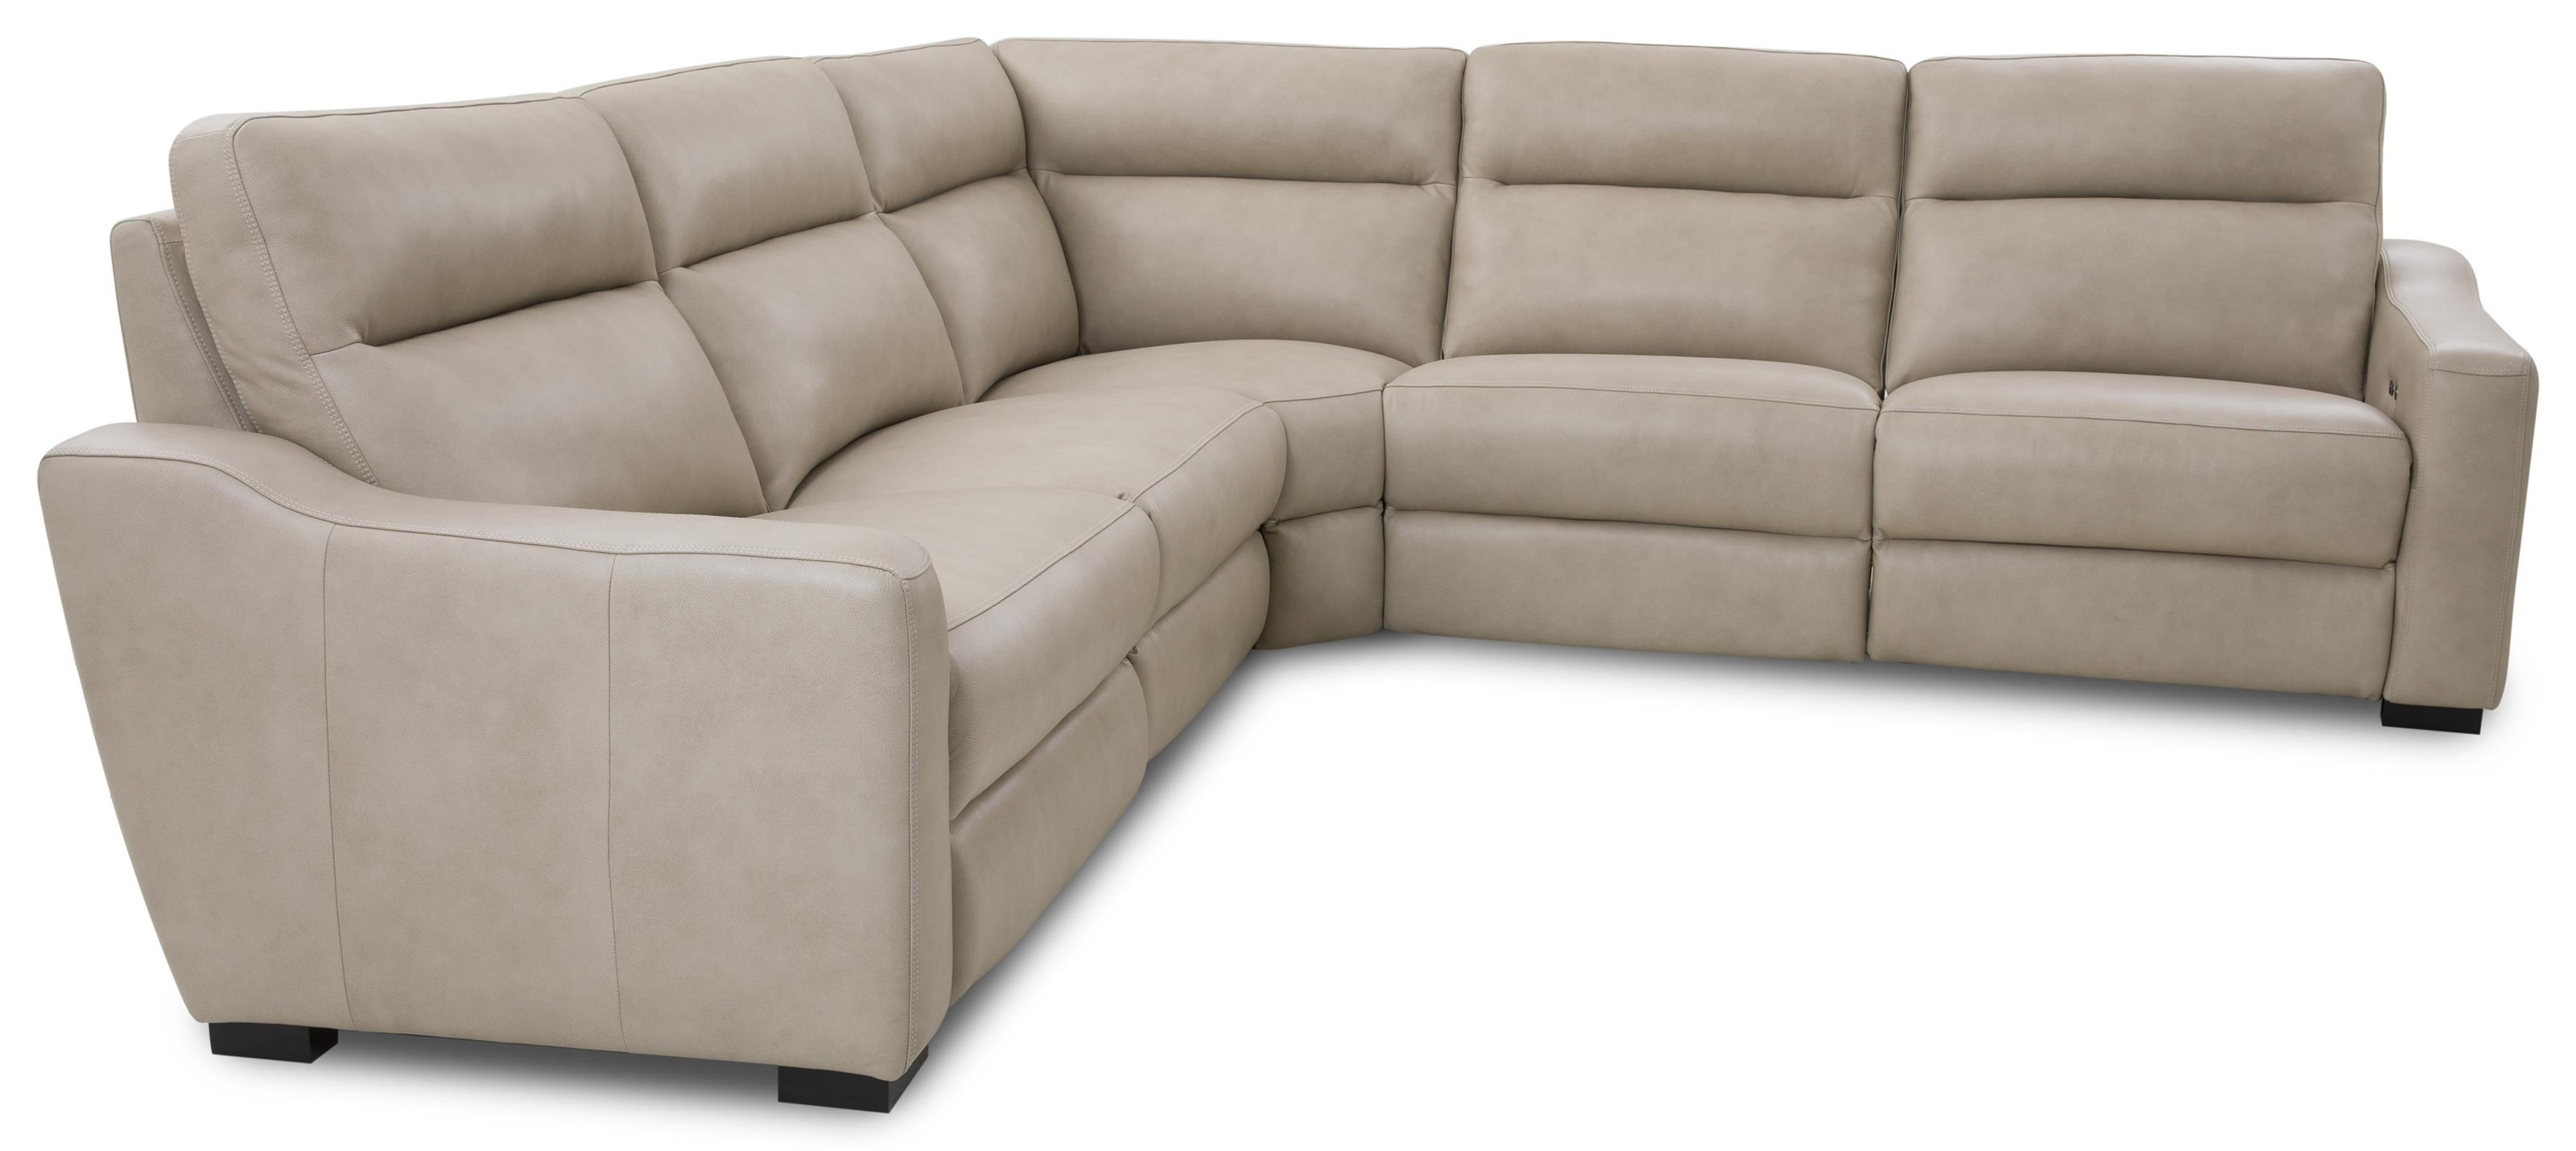 Cheers 90055 Leather 5-Piece Sectional by MW Home at Baer's Furniture